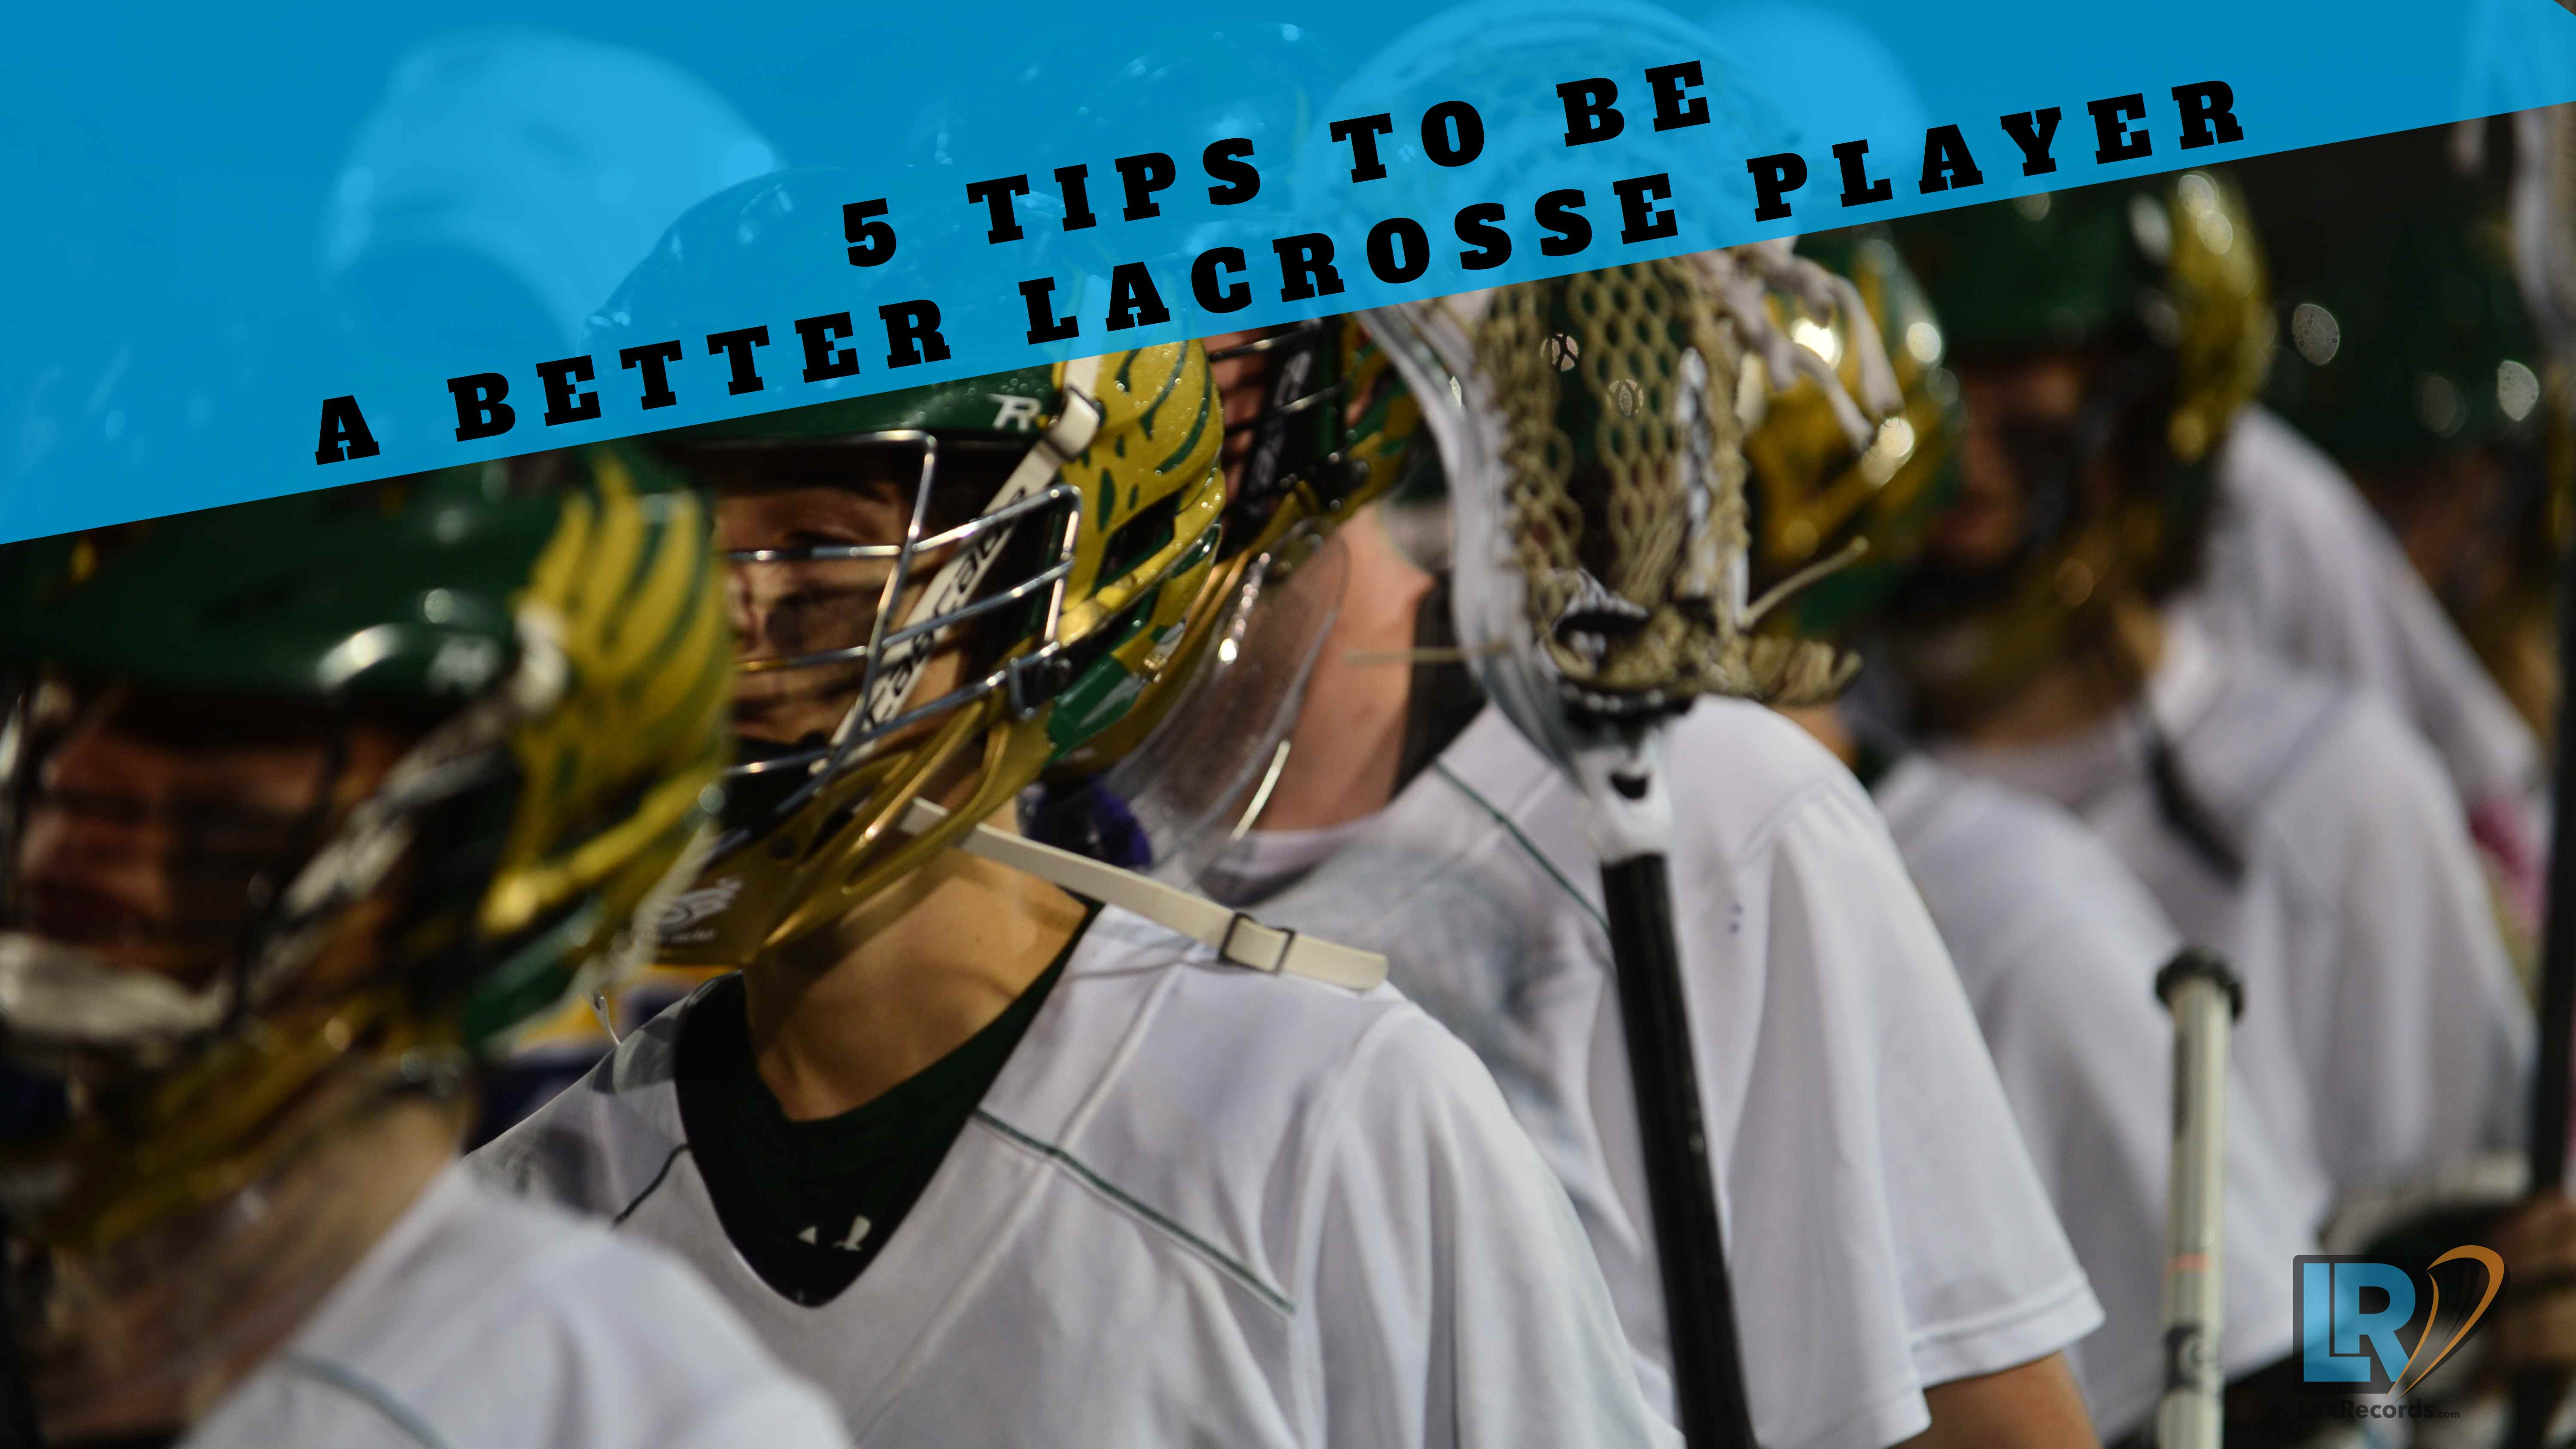 Five Tips to be a better lacrosse player.